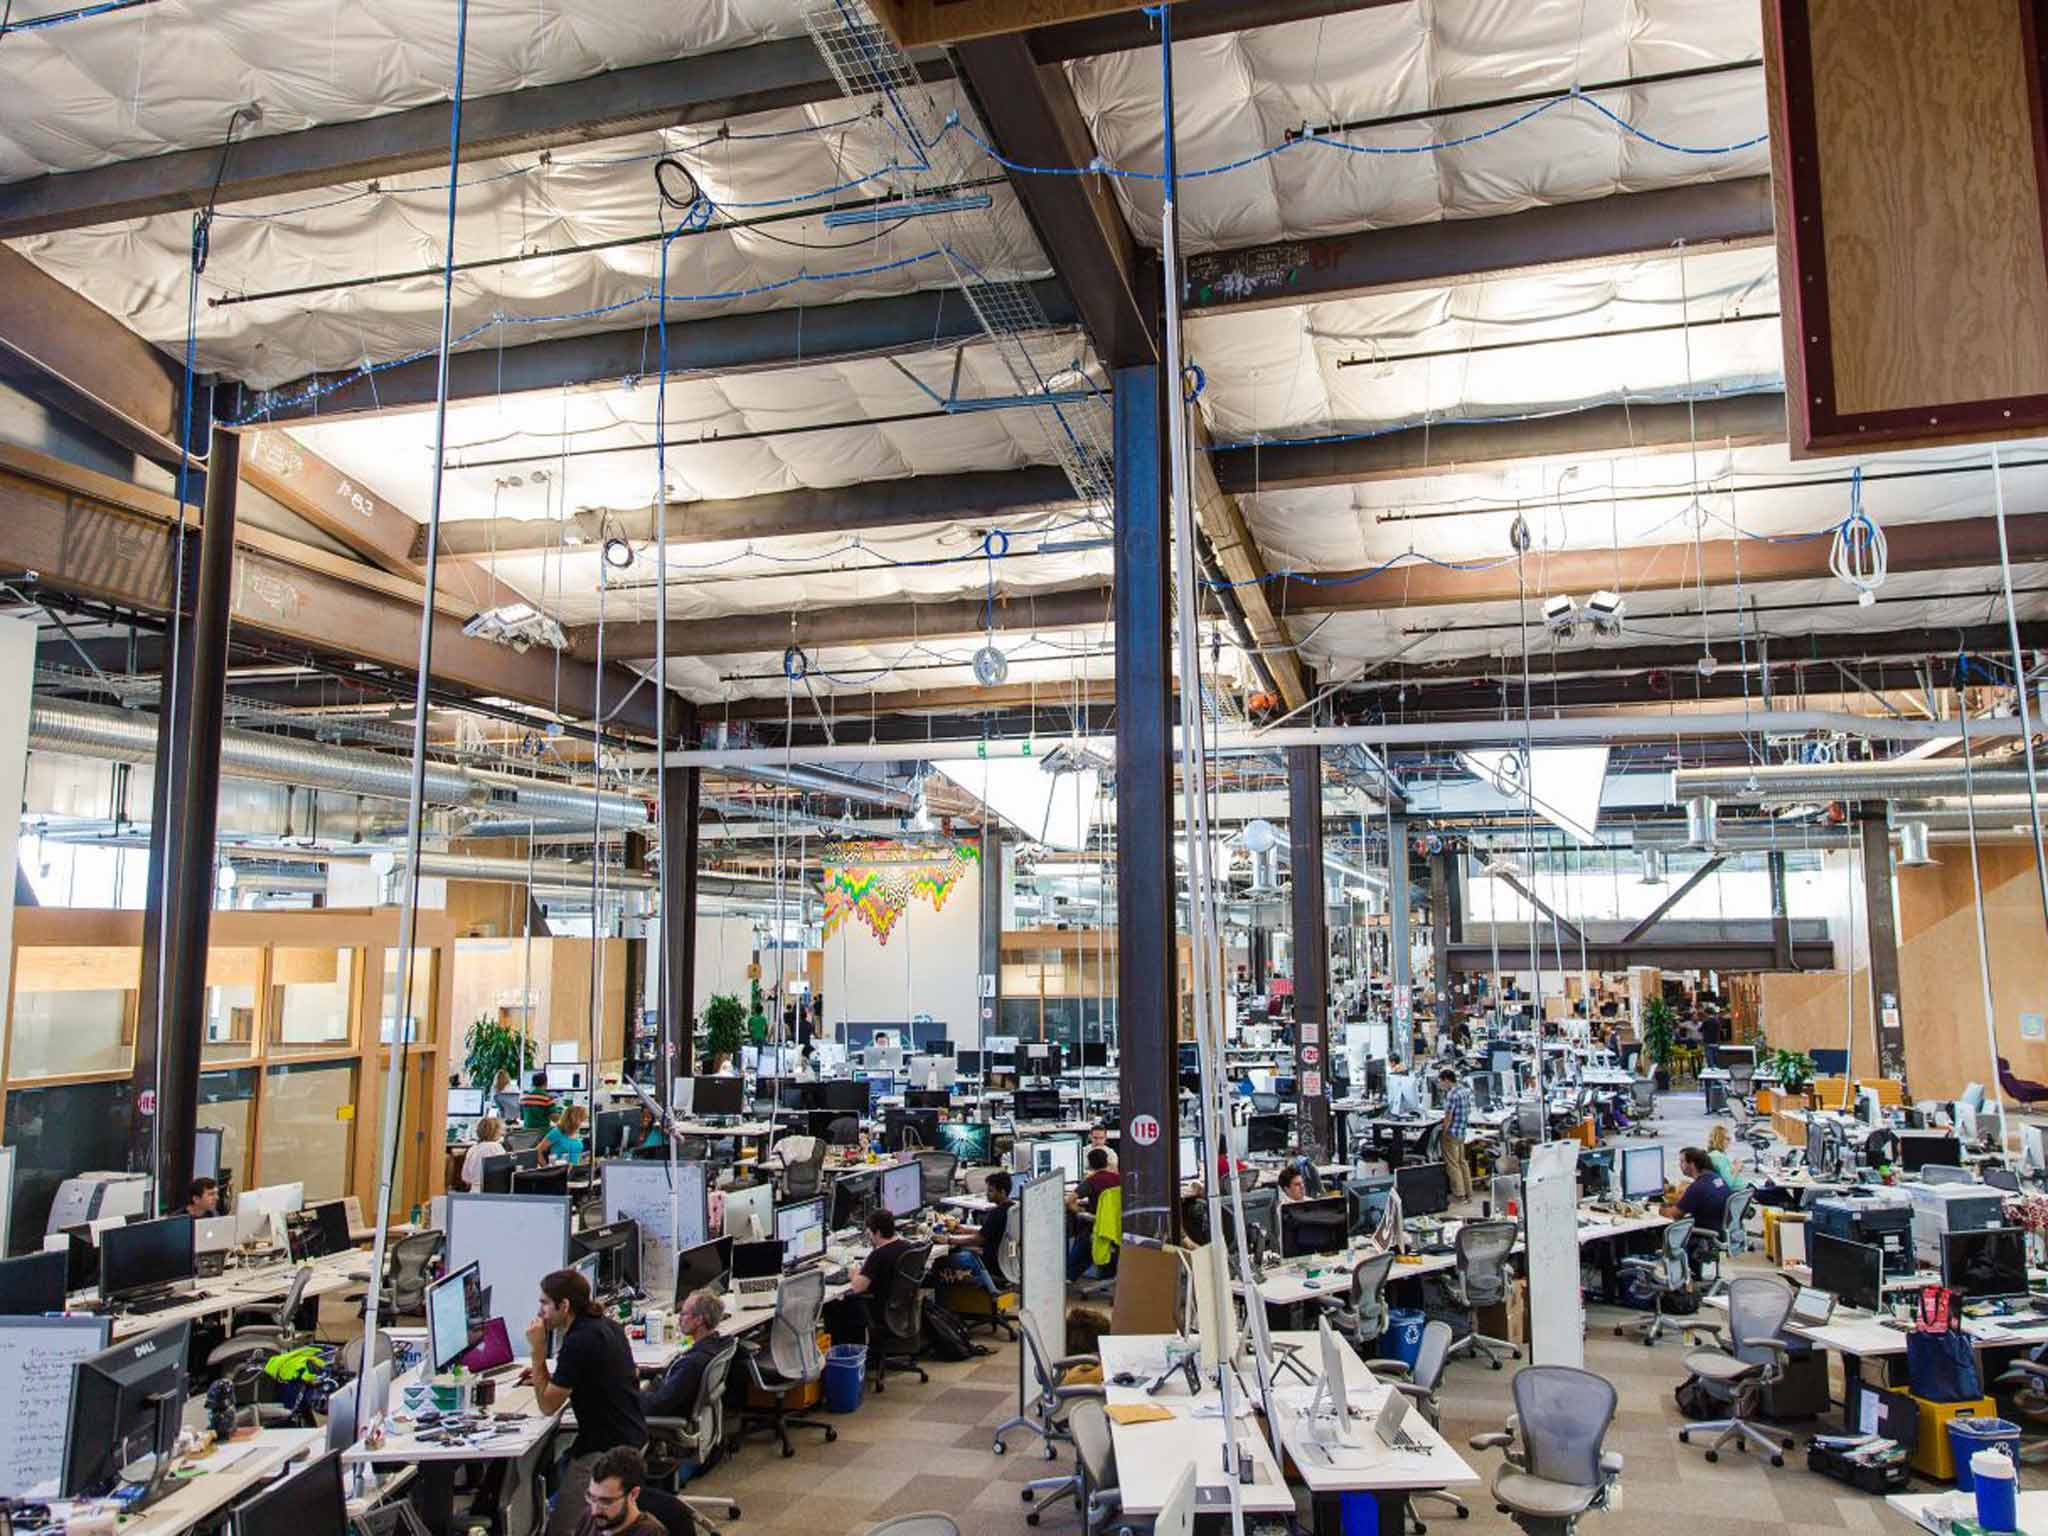 facebook office design. Facebook\u0027s New Headquarters Where Open-plan Is King And \u0027frictionless Working\u0027 The Aim | Independent Facebook Office Design I